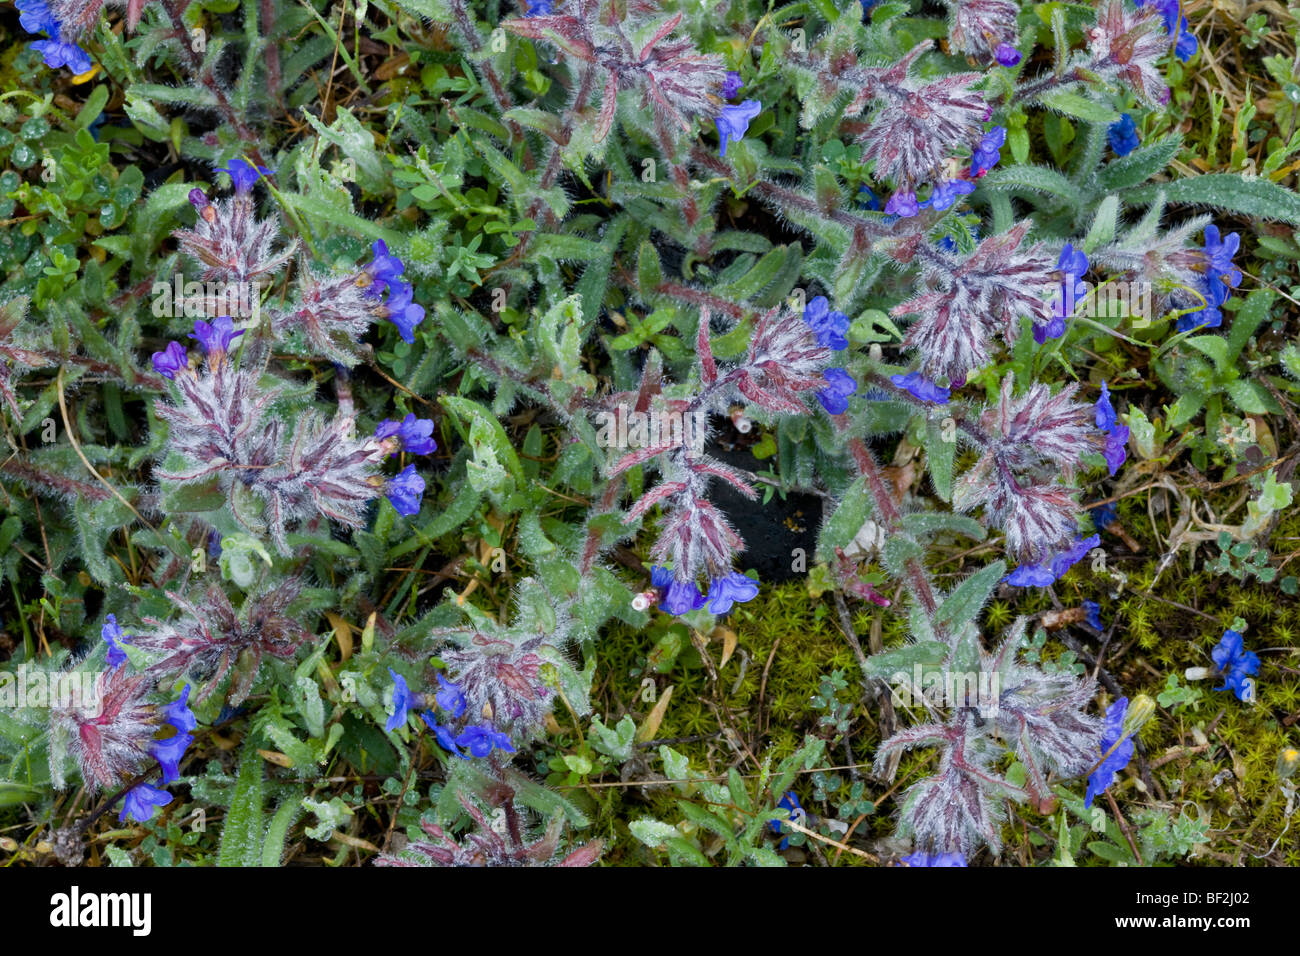 Alkanna Tinctoria Seeds dyers alkanet photos & dyers alkanet images - alamy